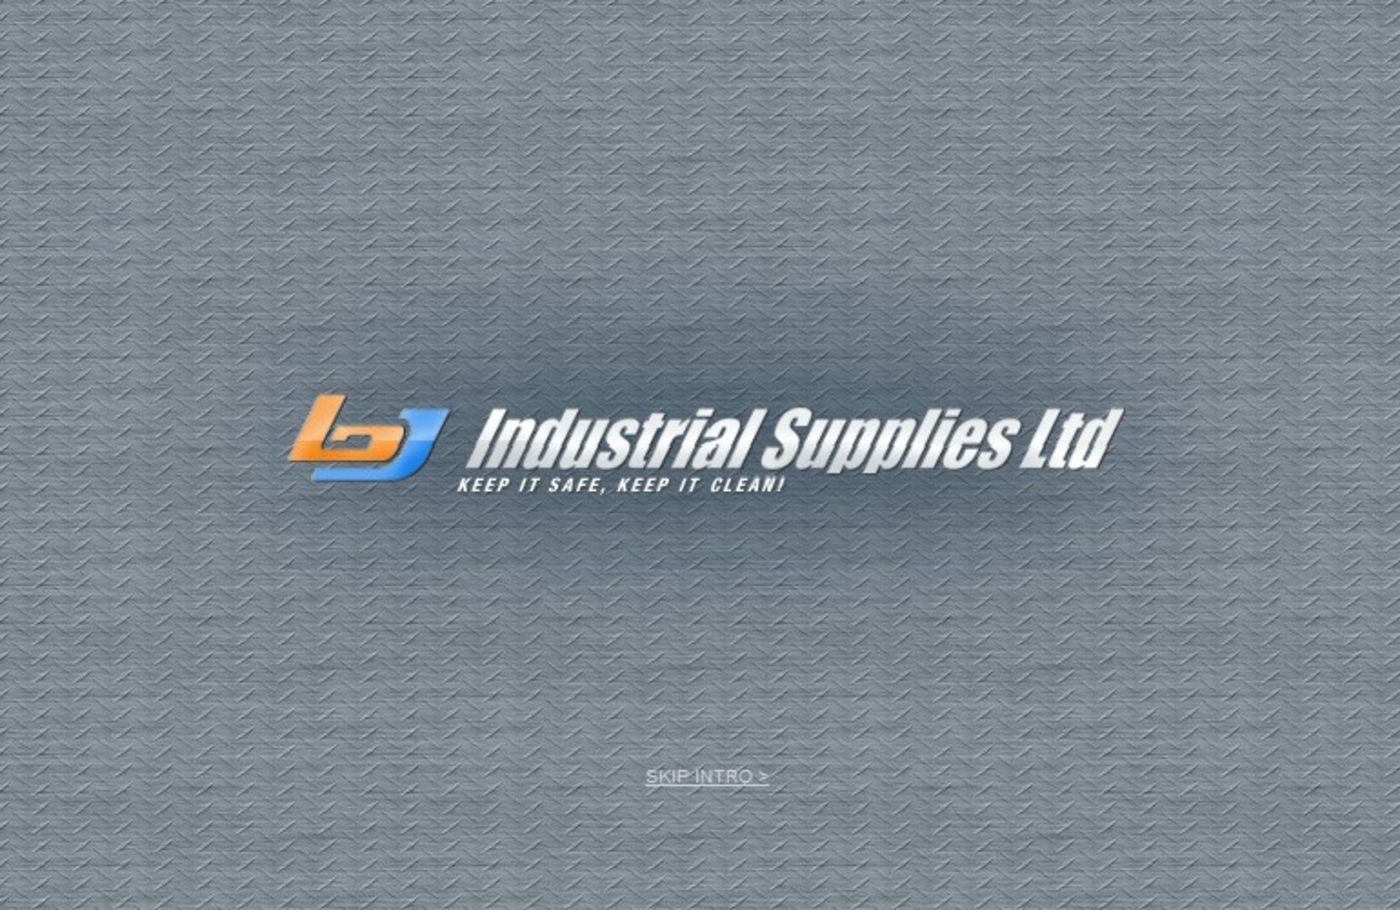 BJ Industrial Supplies Welcome